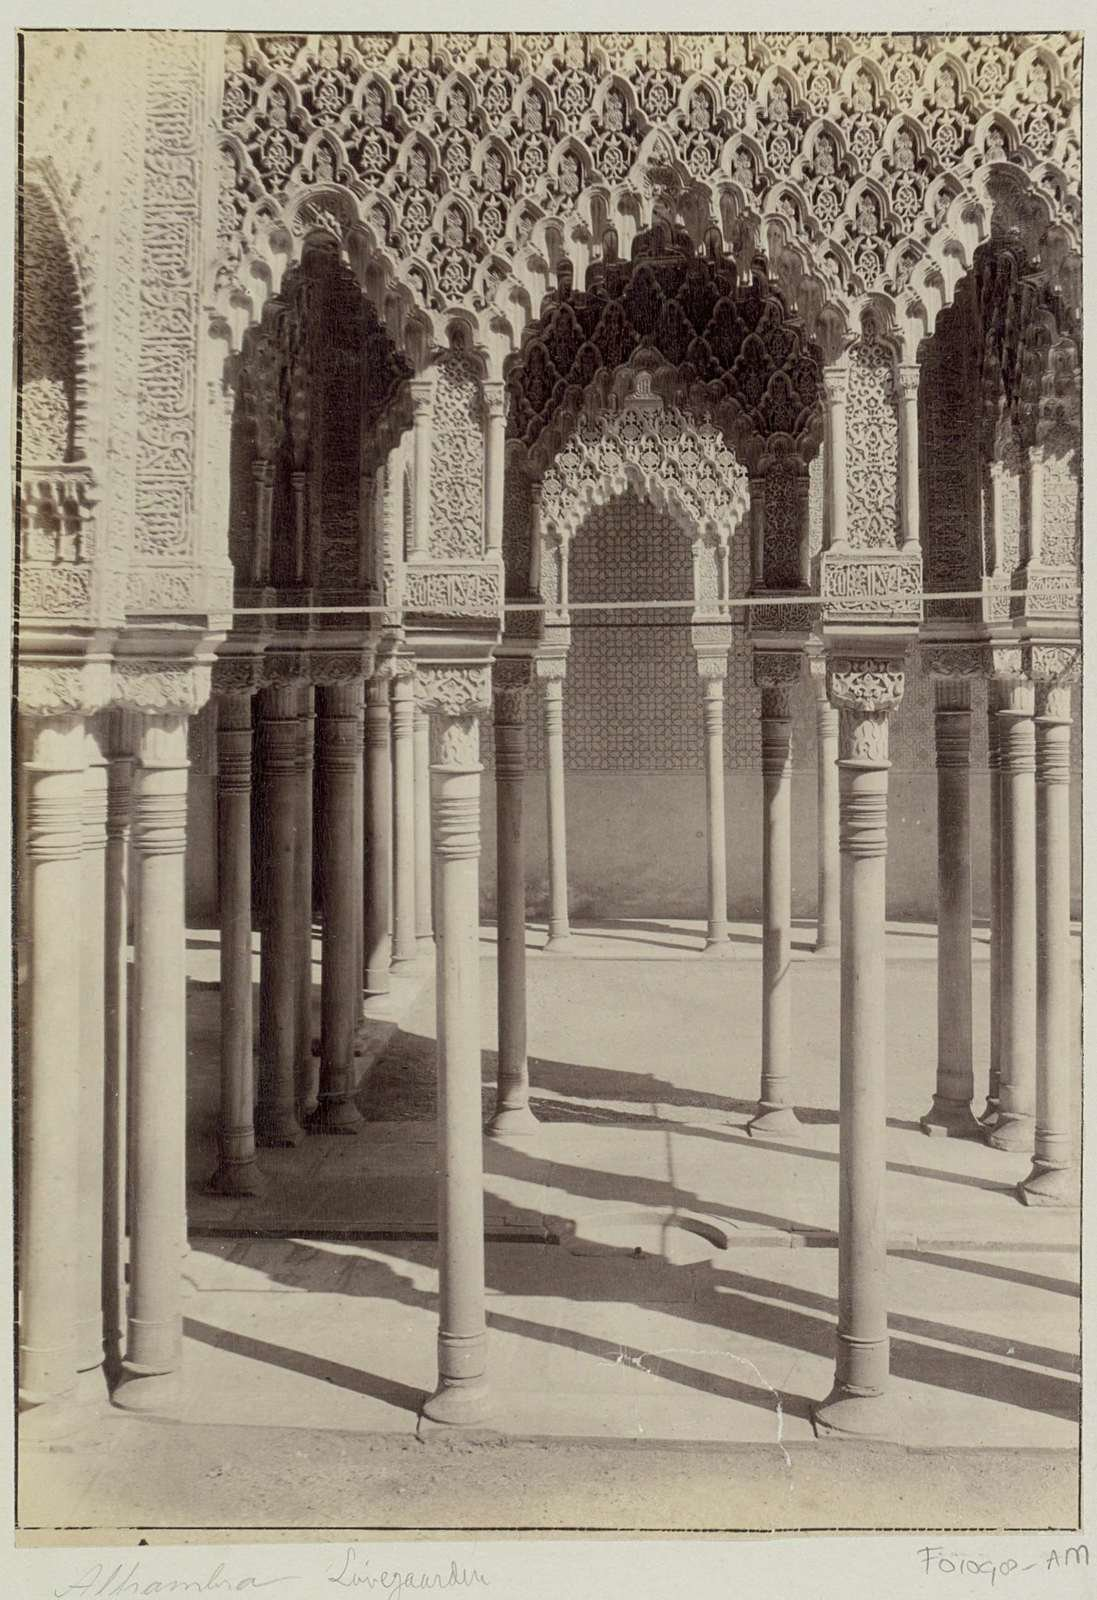 Interior with carved arches of the Alhambra in Granada (Spain), c.1860 - c.1880, anonymous, Rijksmuseum, Public Domain Mark